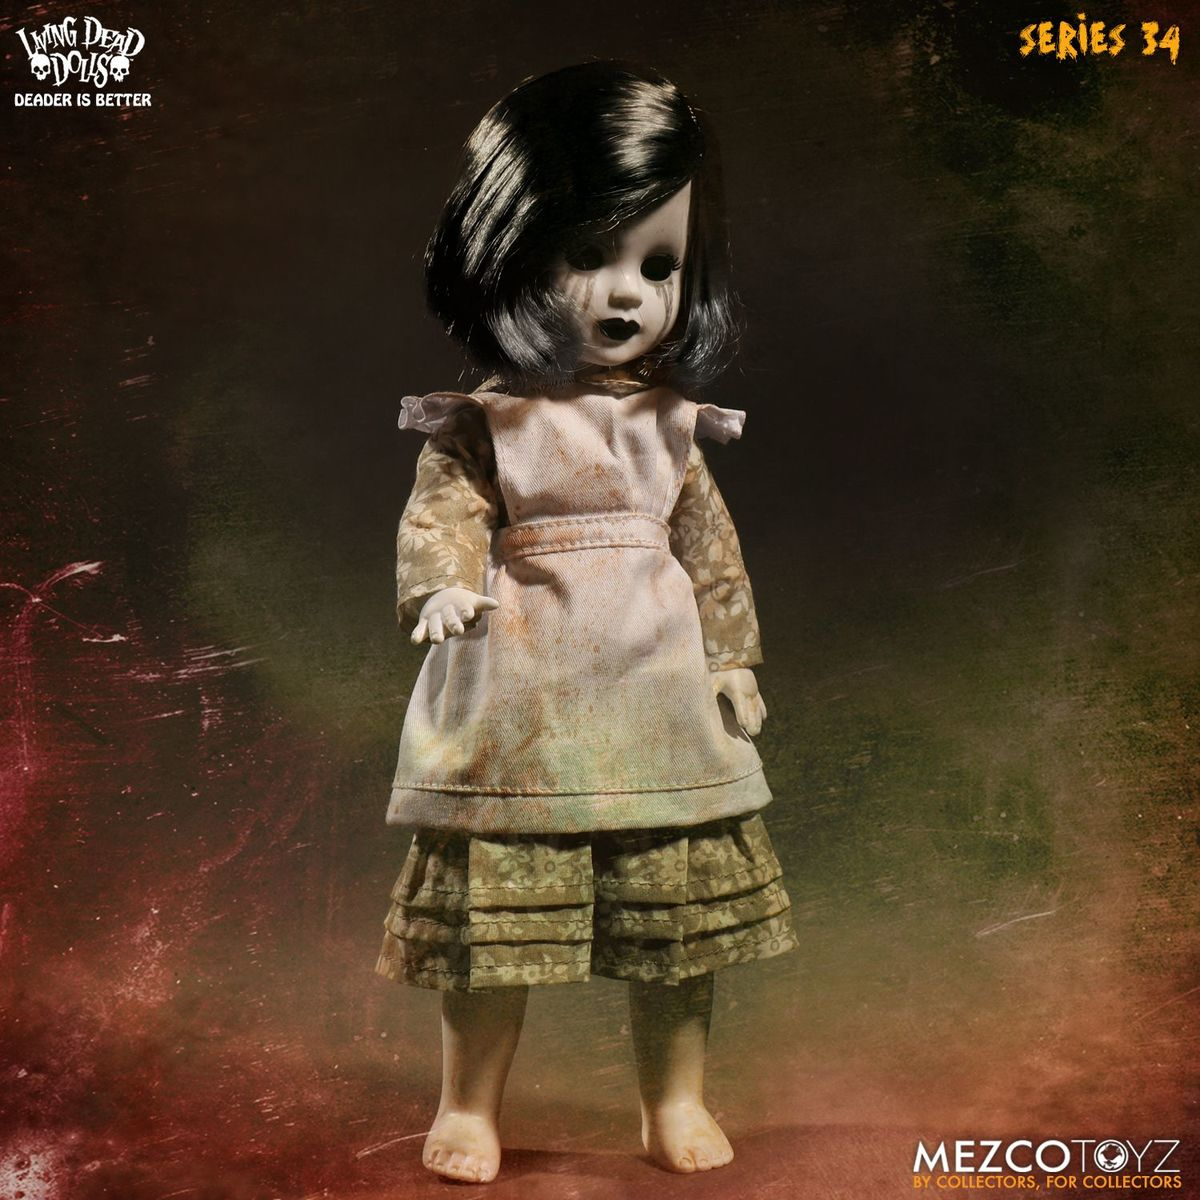 panenka Living Dead Dolls - The Time Has Come To Tell The Tale - Coalette - MEZ93415-4